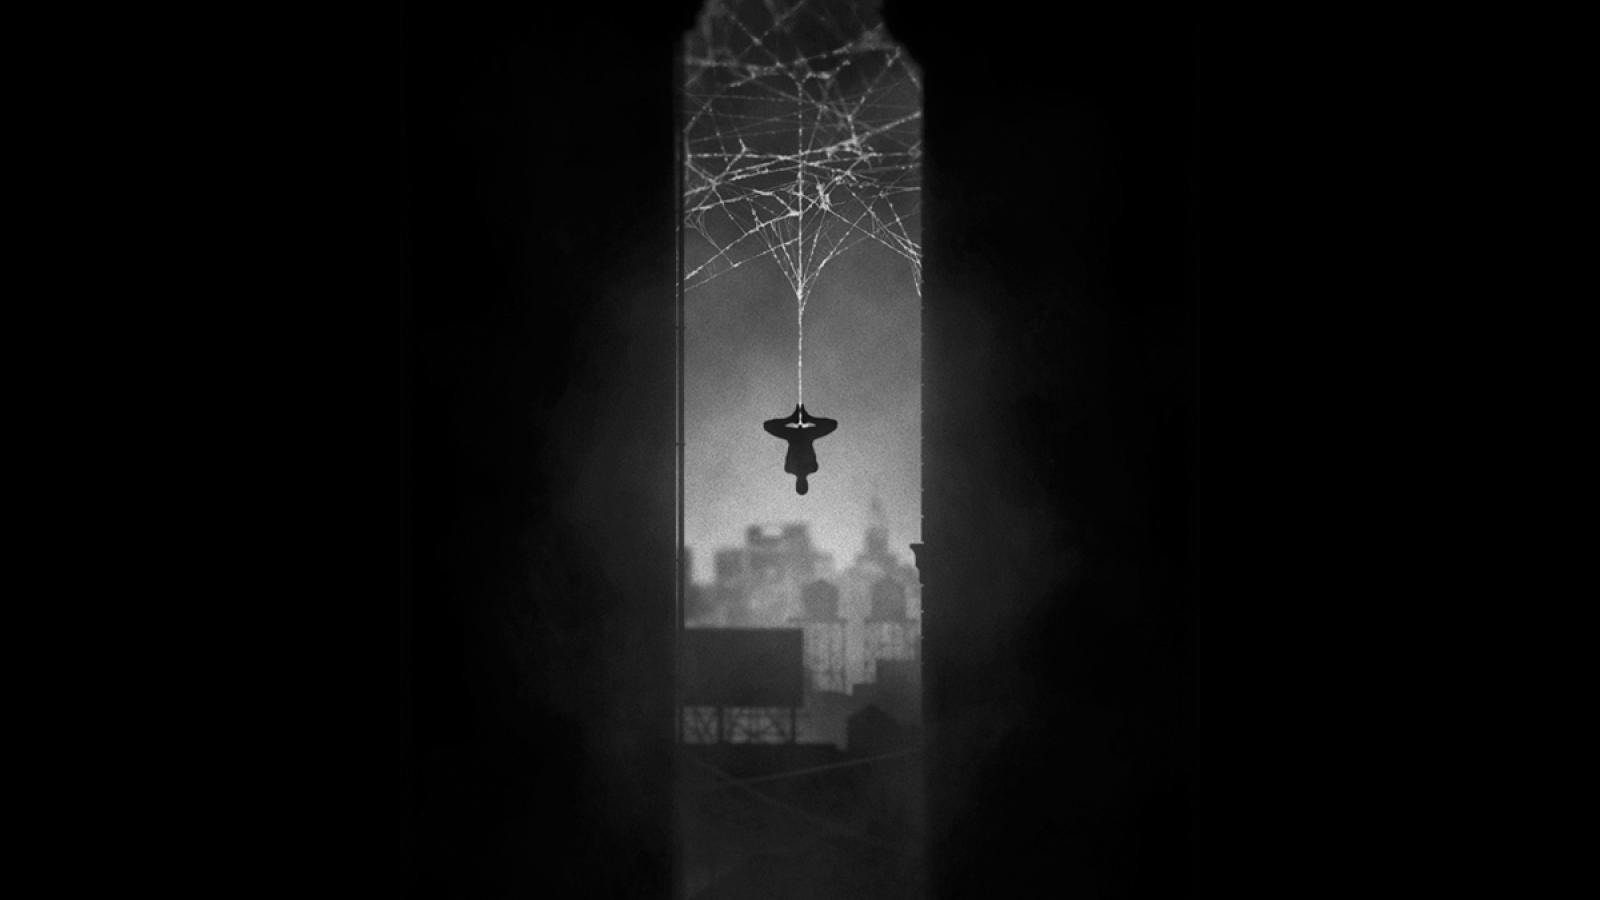 Noir Series by Marko Manev